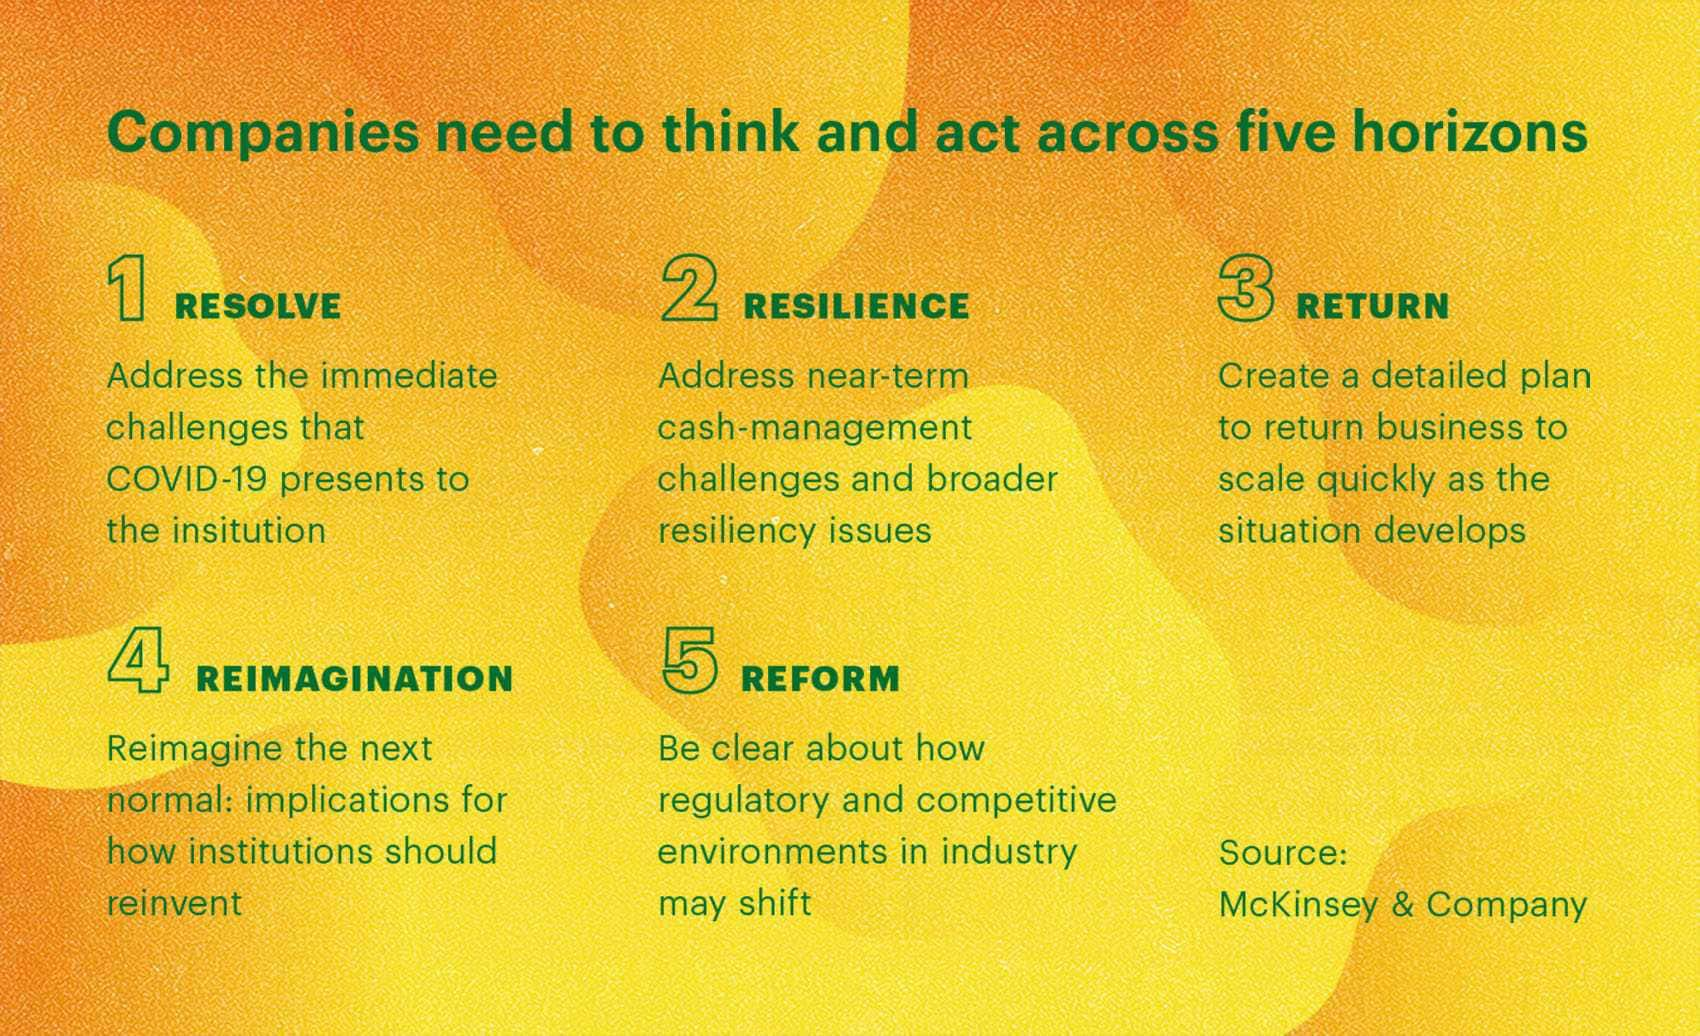 Companies should plan their actions across these five horizons